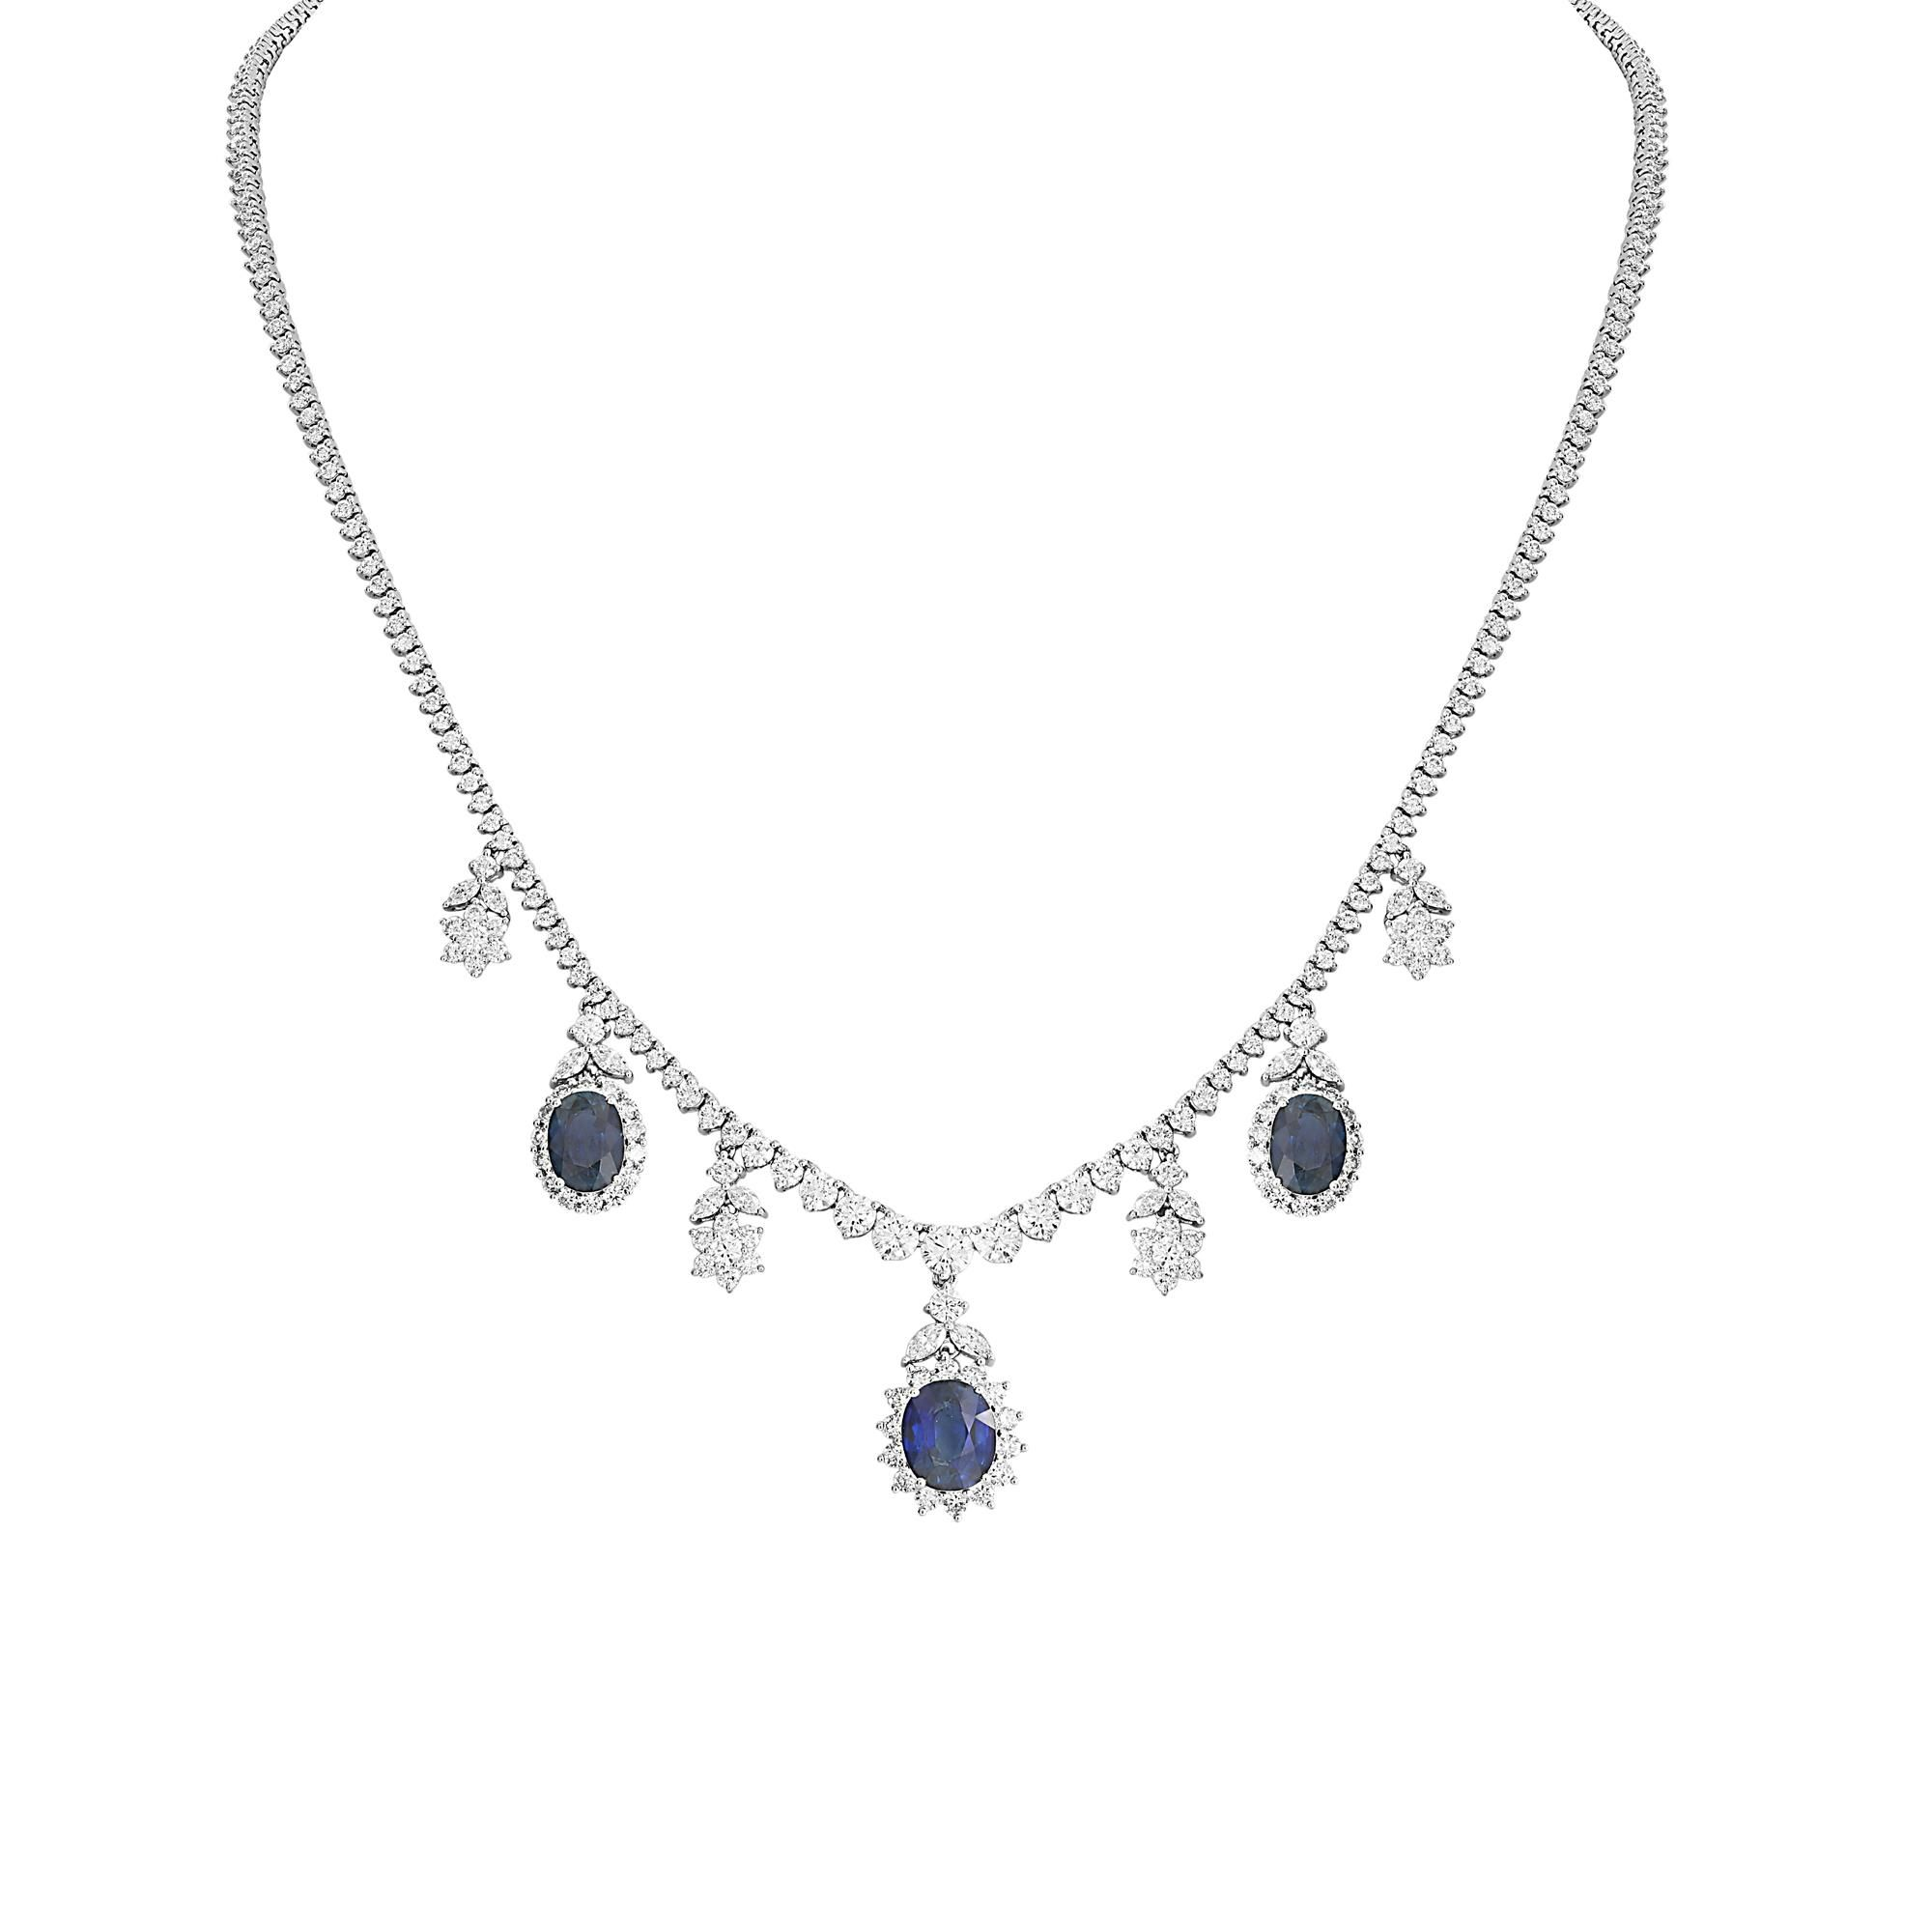 London Collection 18k White Gold 3 Oval Blue Sapphire Diamond Tennis Necklace